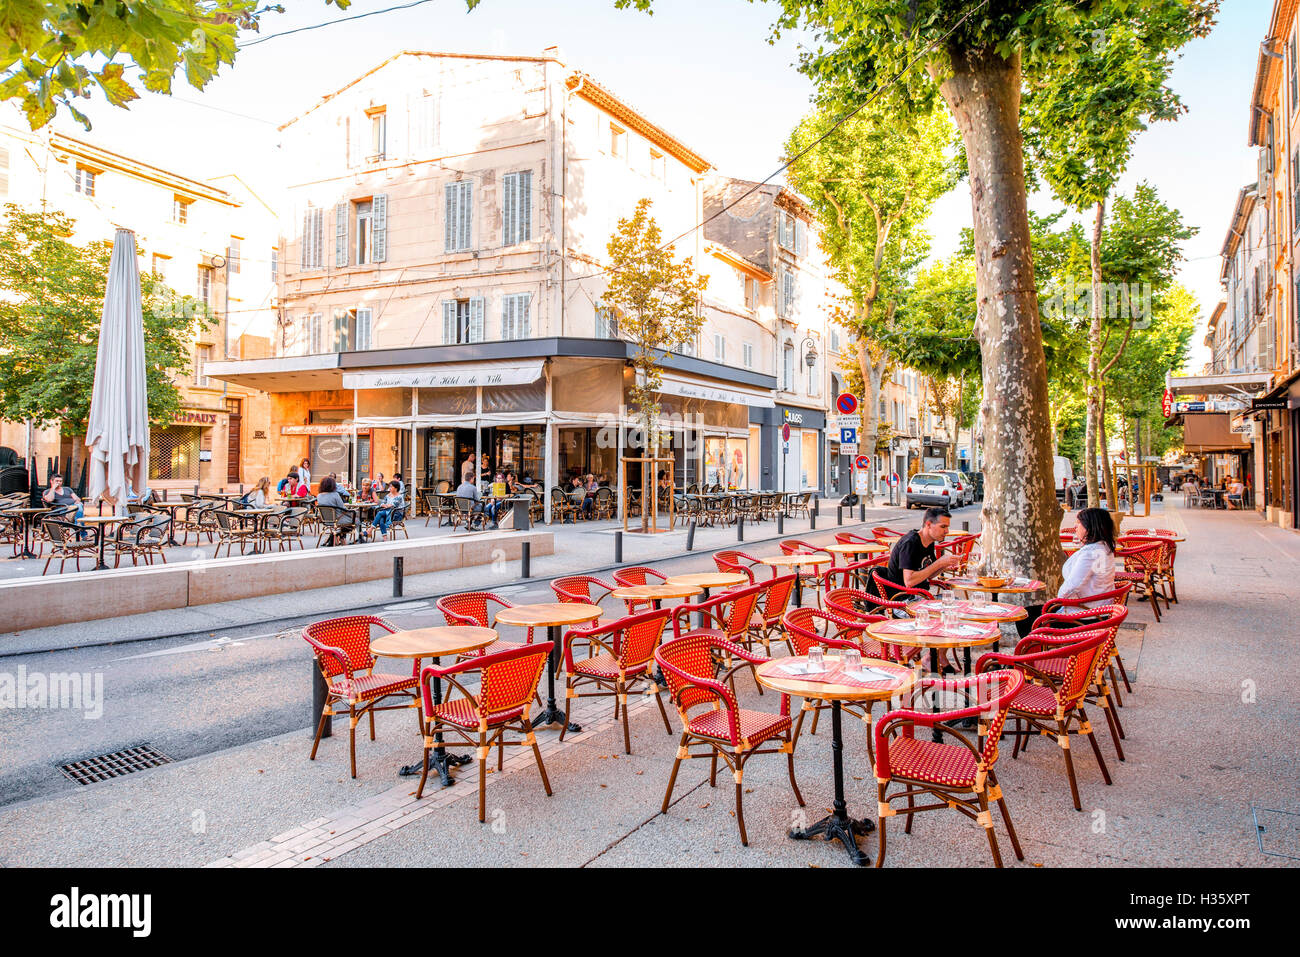 Salon de provence stock photos salon de provence stock images